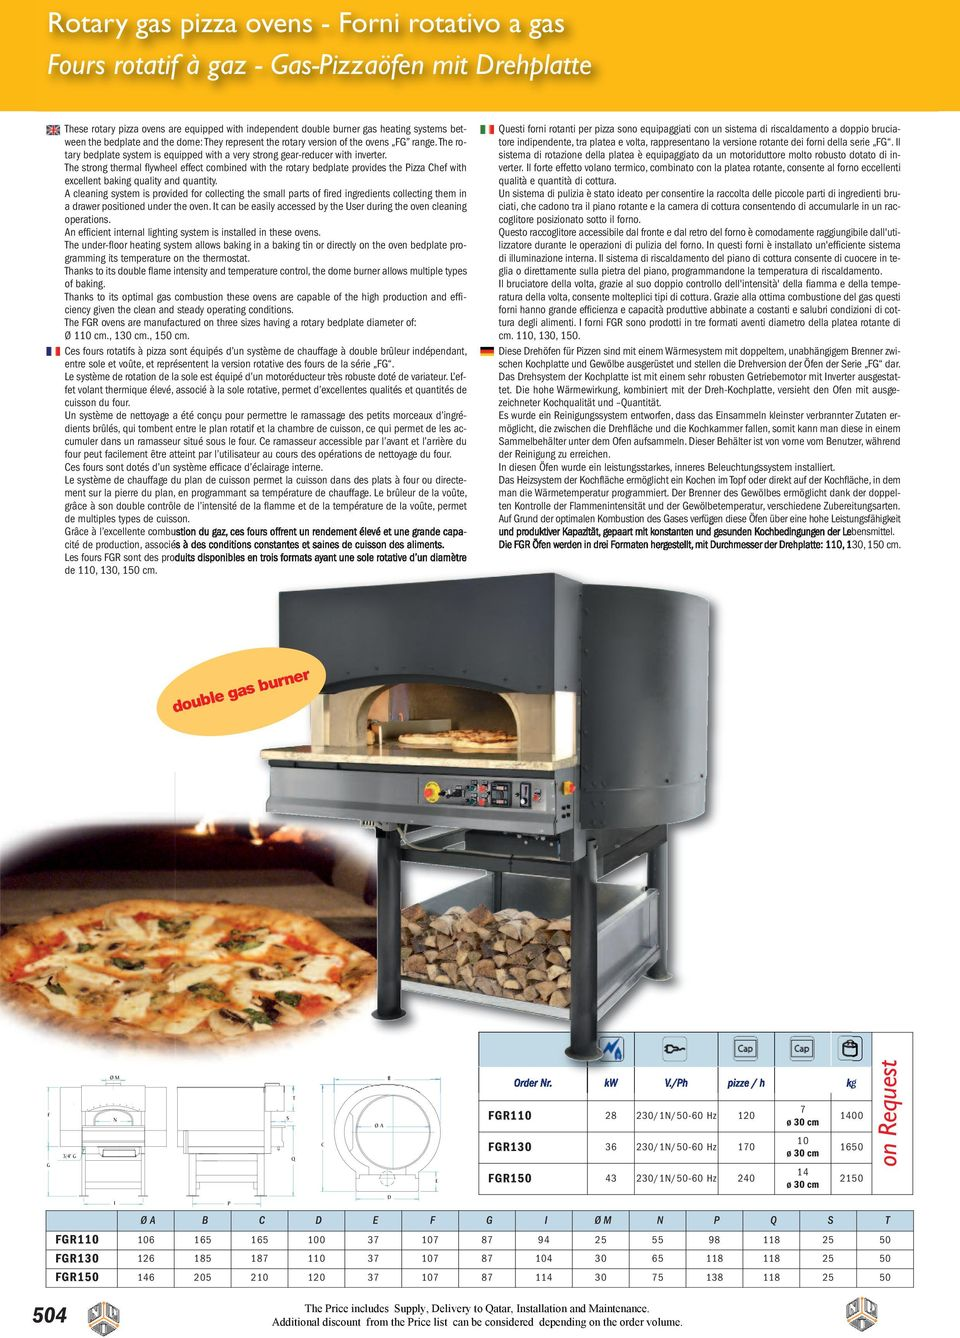 The strong thermal flywheel effect combined with the rotary bedplate provides the Pizza Chef with excellent baking quality and quantity.